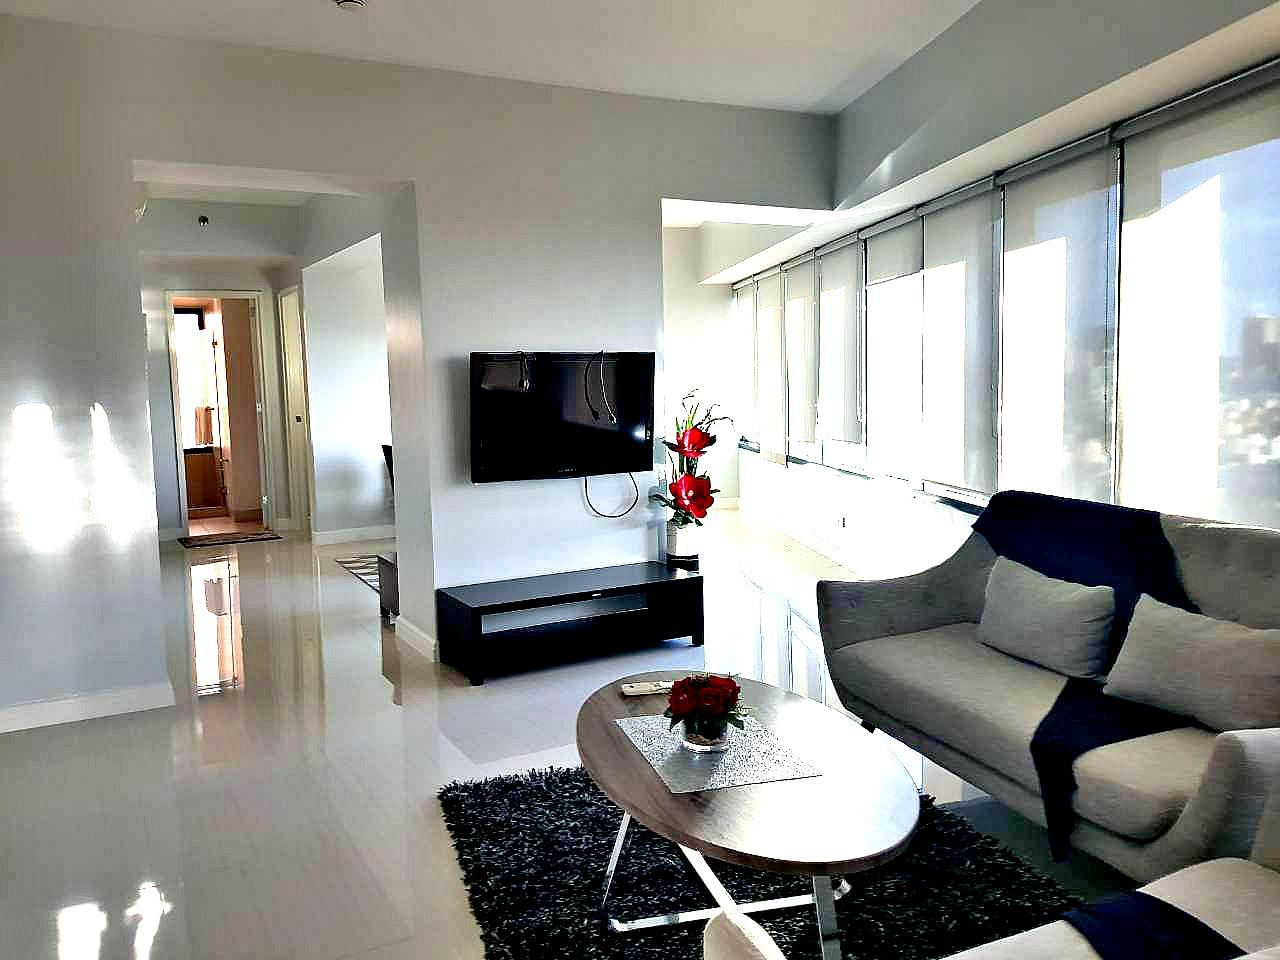 ONE ROCKWELL 3BR CONDO RENT SEE PHOTOS